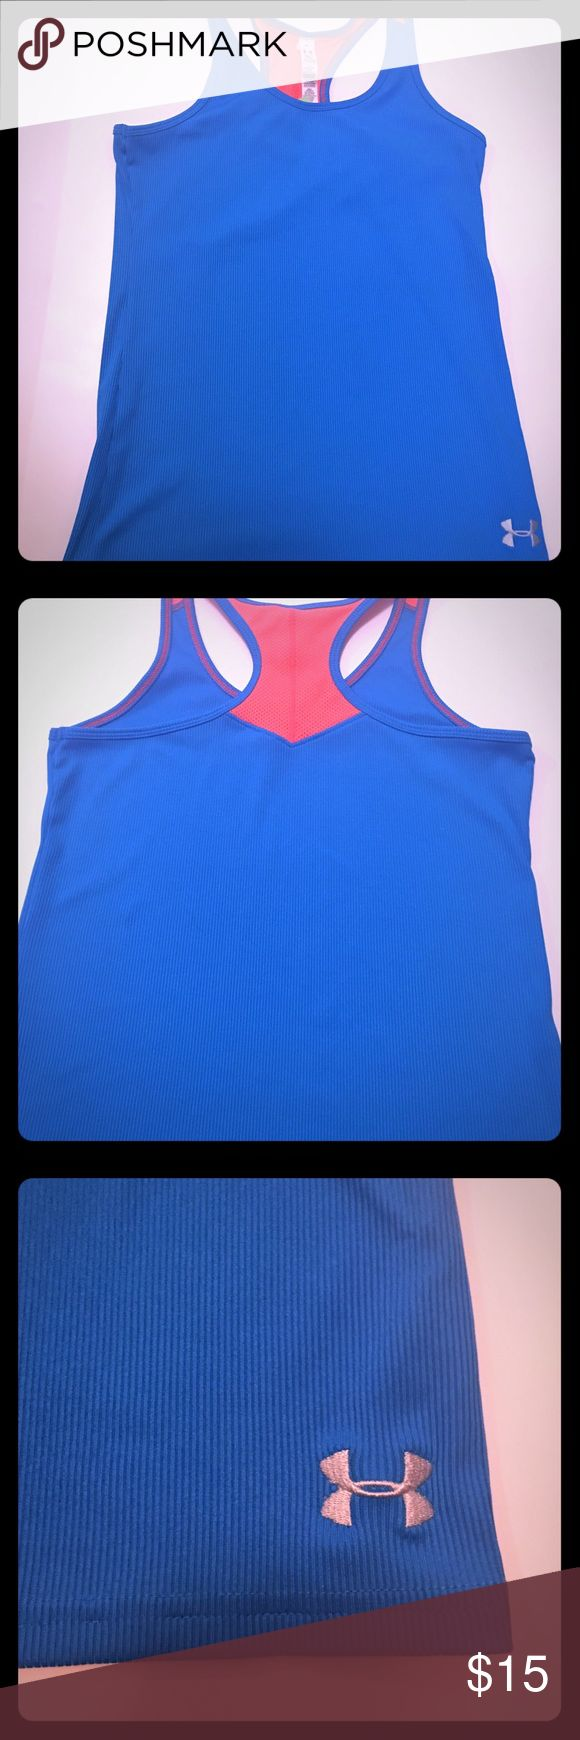 TANK TOP Athletic tank top under Armour in turquoise and orange, it has a razorback . Under Armour Shirts & Tops Tank Tops